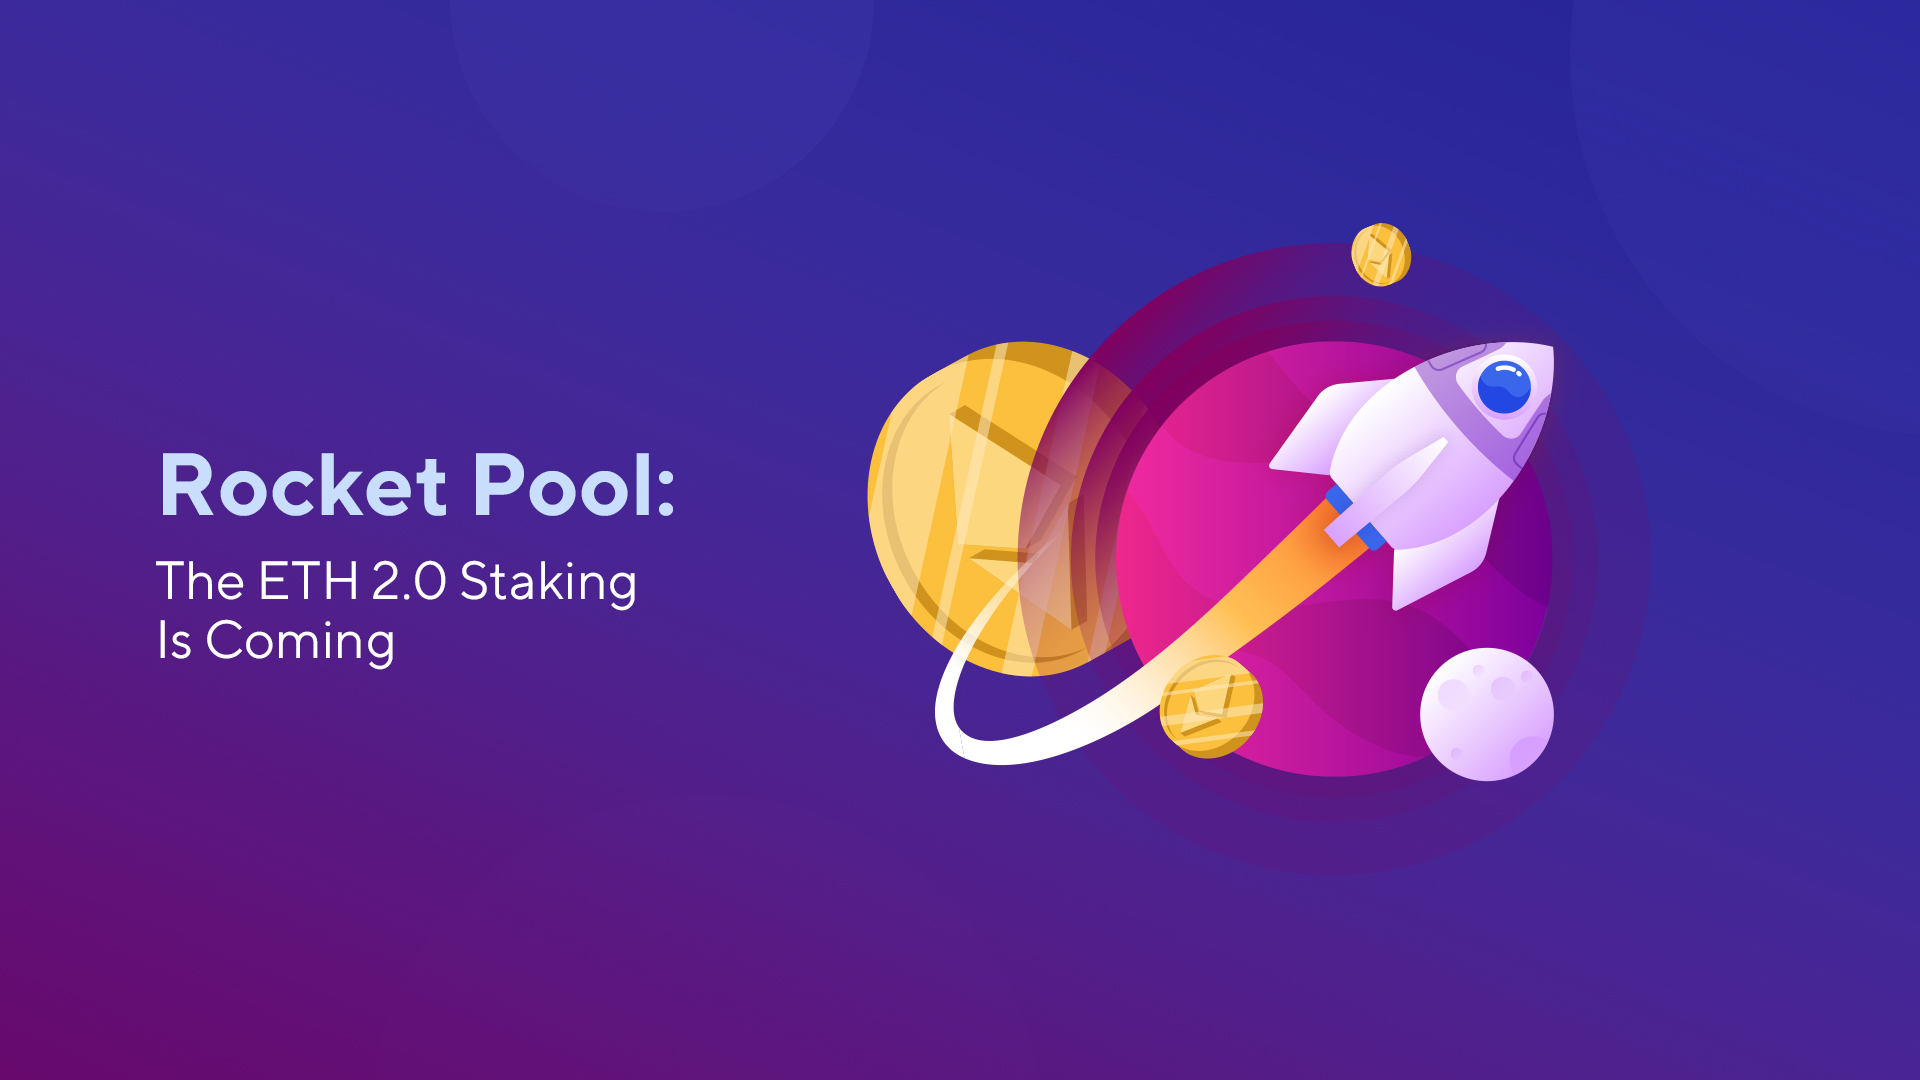 Rocket Pool: The ETH 2.0 Staking Is Coming